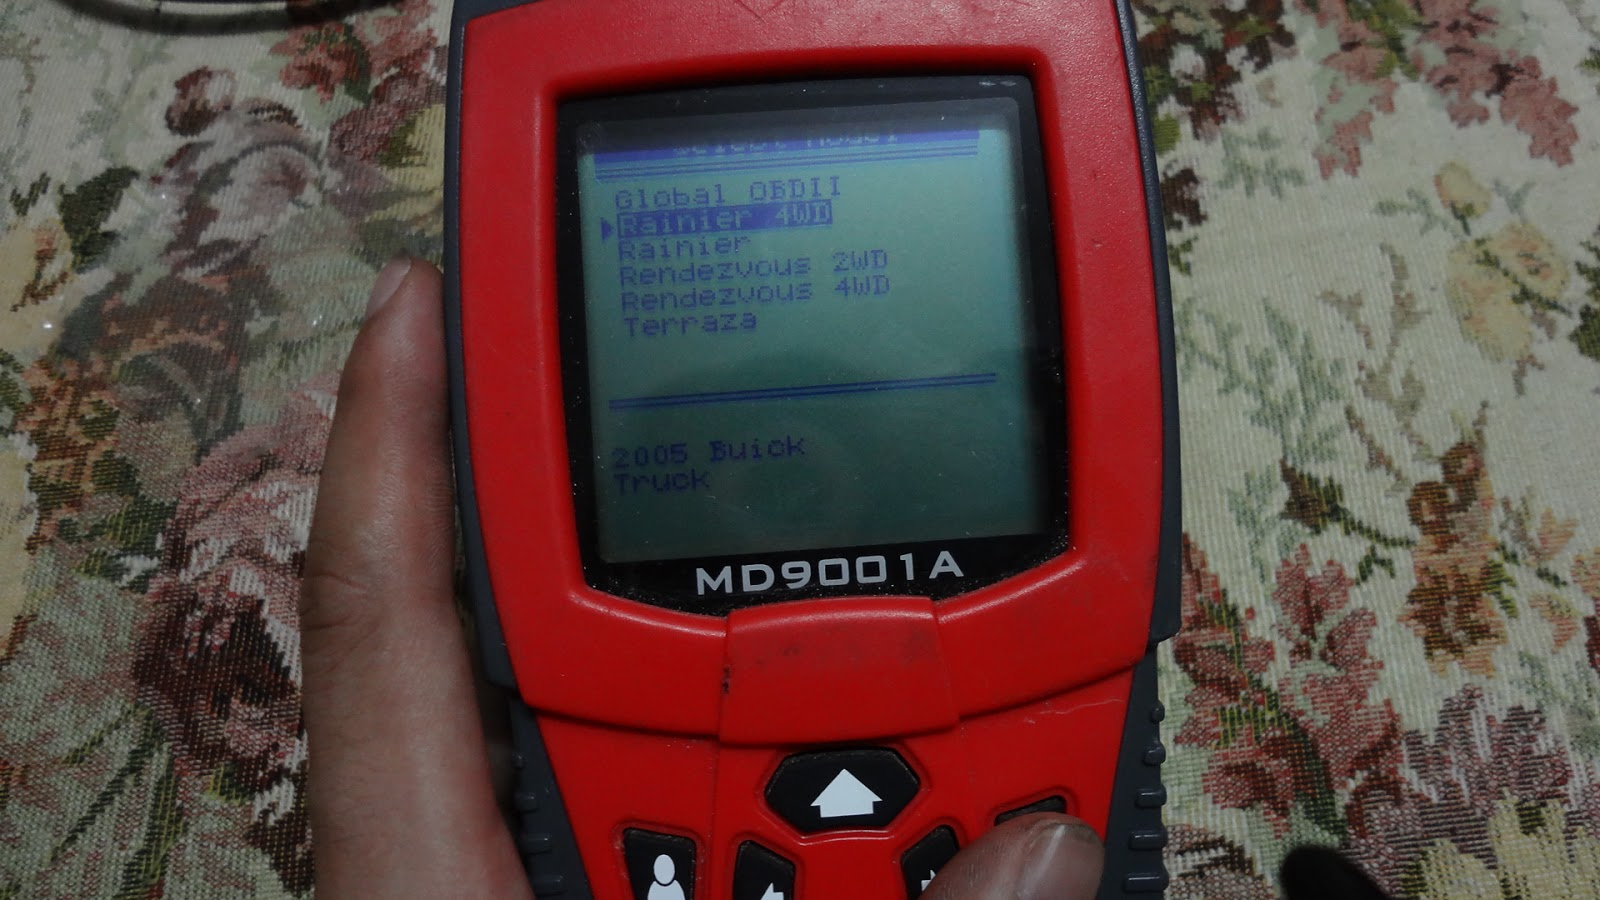 Bob electronics: MATCO TOOLS MD9001A AUTO CODE SCANNER OBD1 OBD2 /Support USA old car from 1985